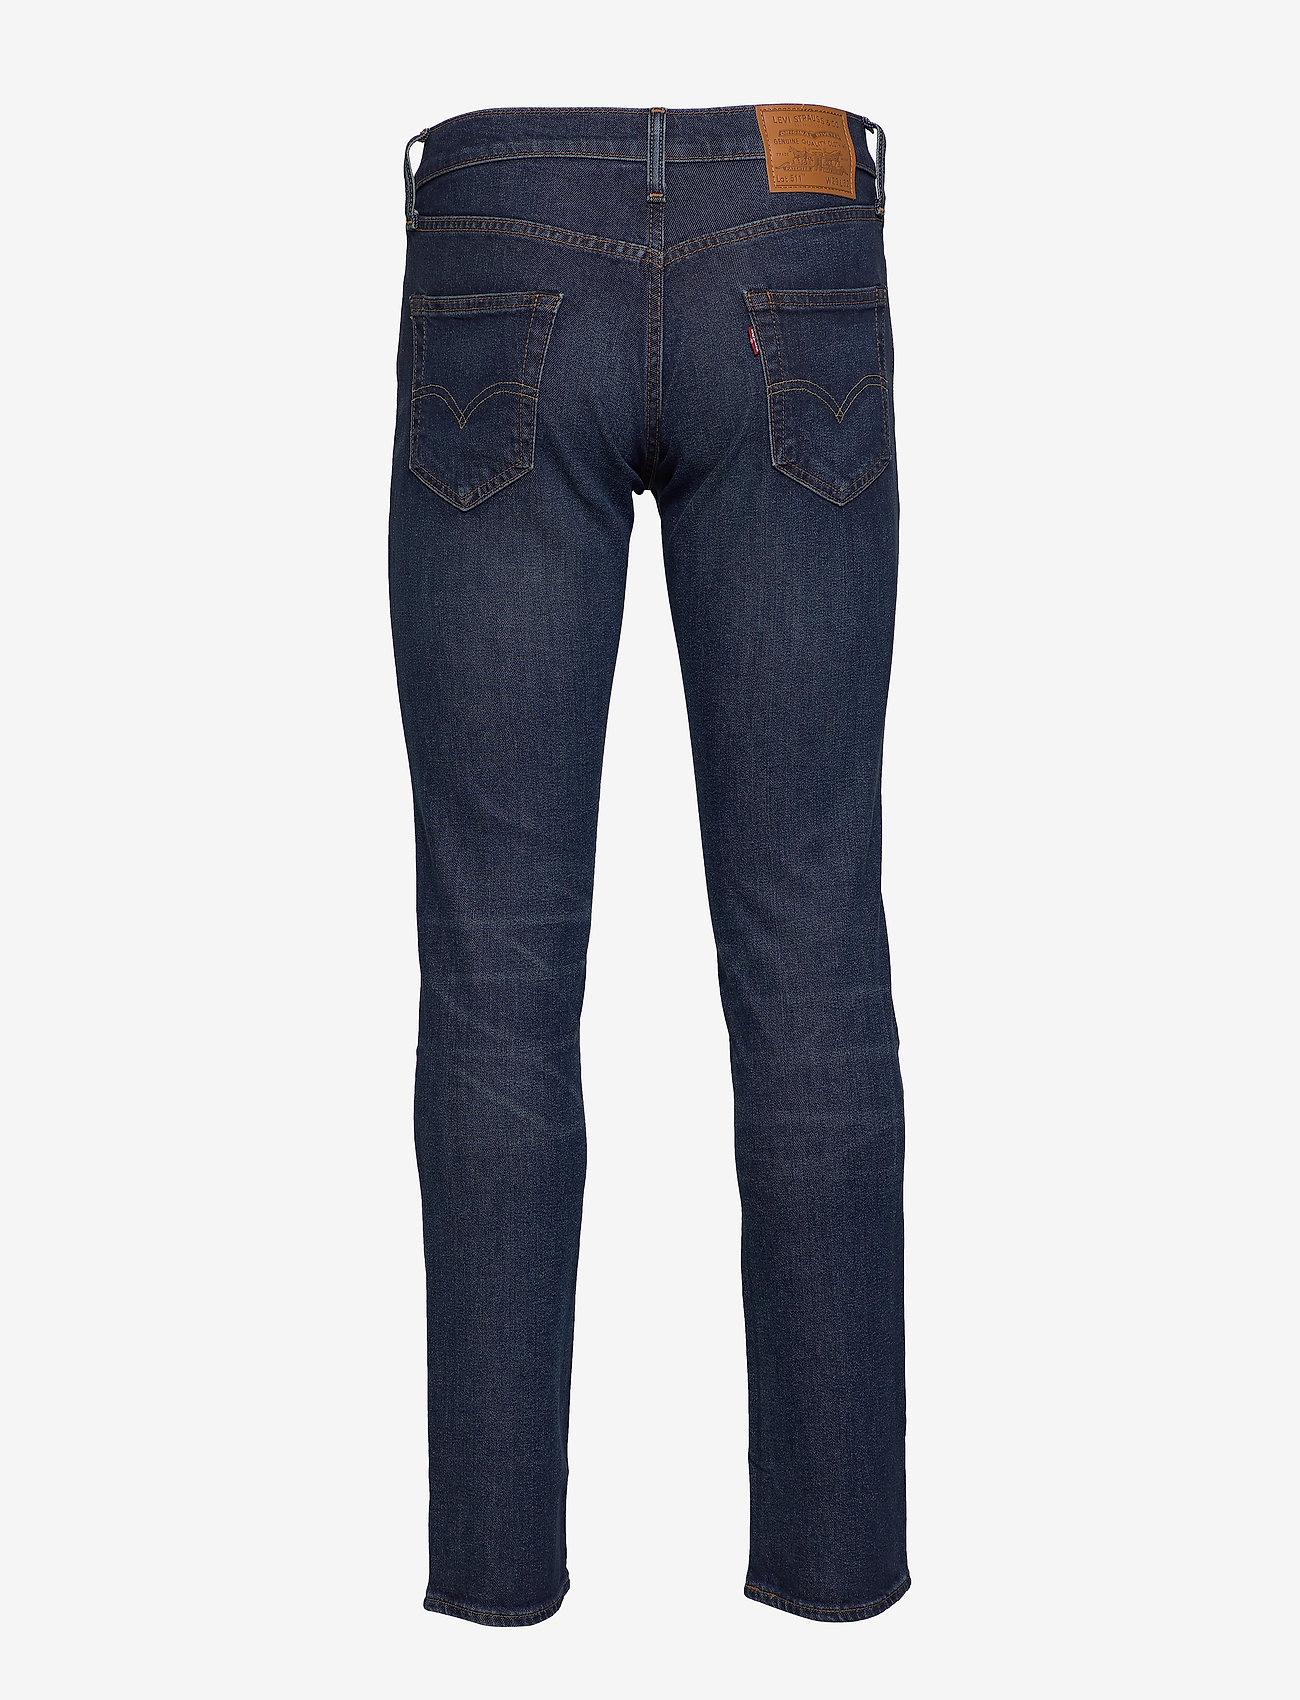 511 Slim The Thrill Adv (Dark Indigo - Worn In) - LEVI´S Men eIbf43